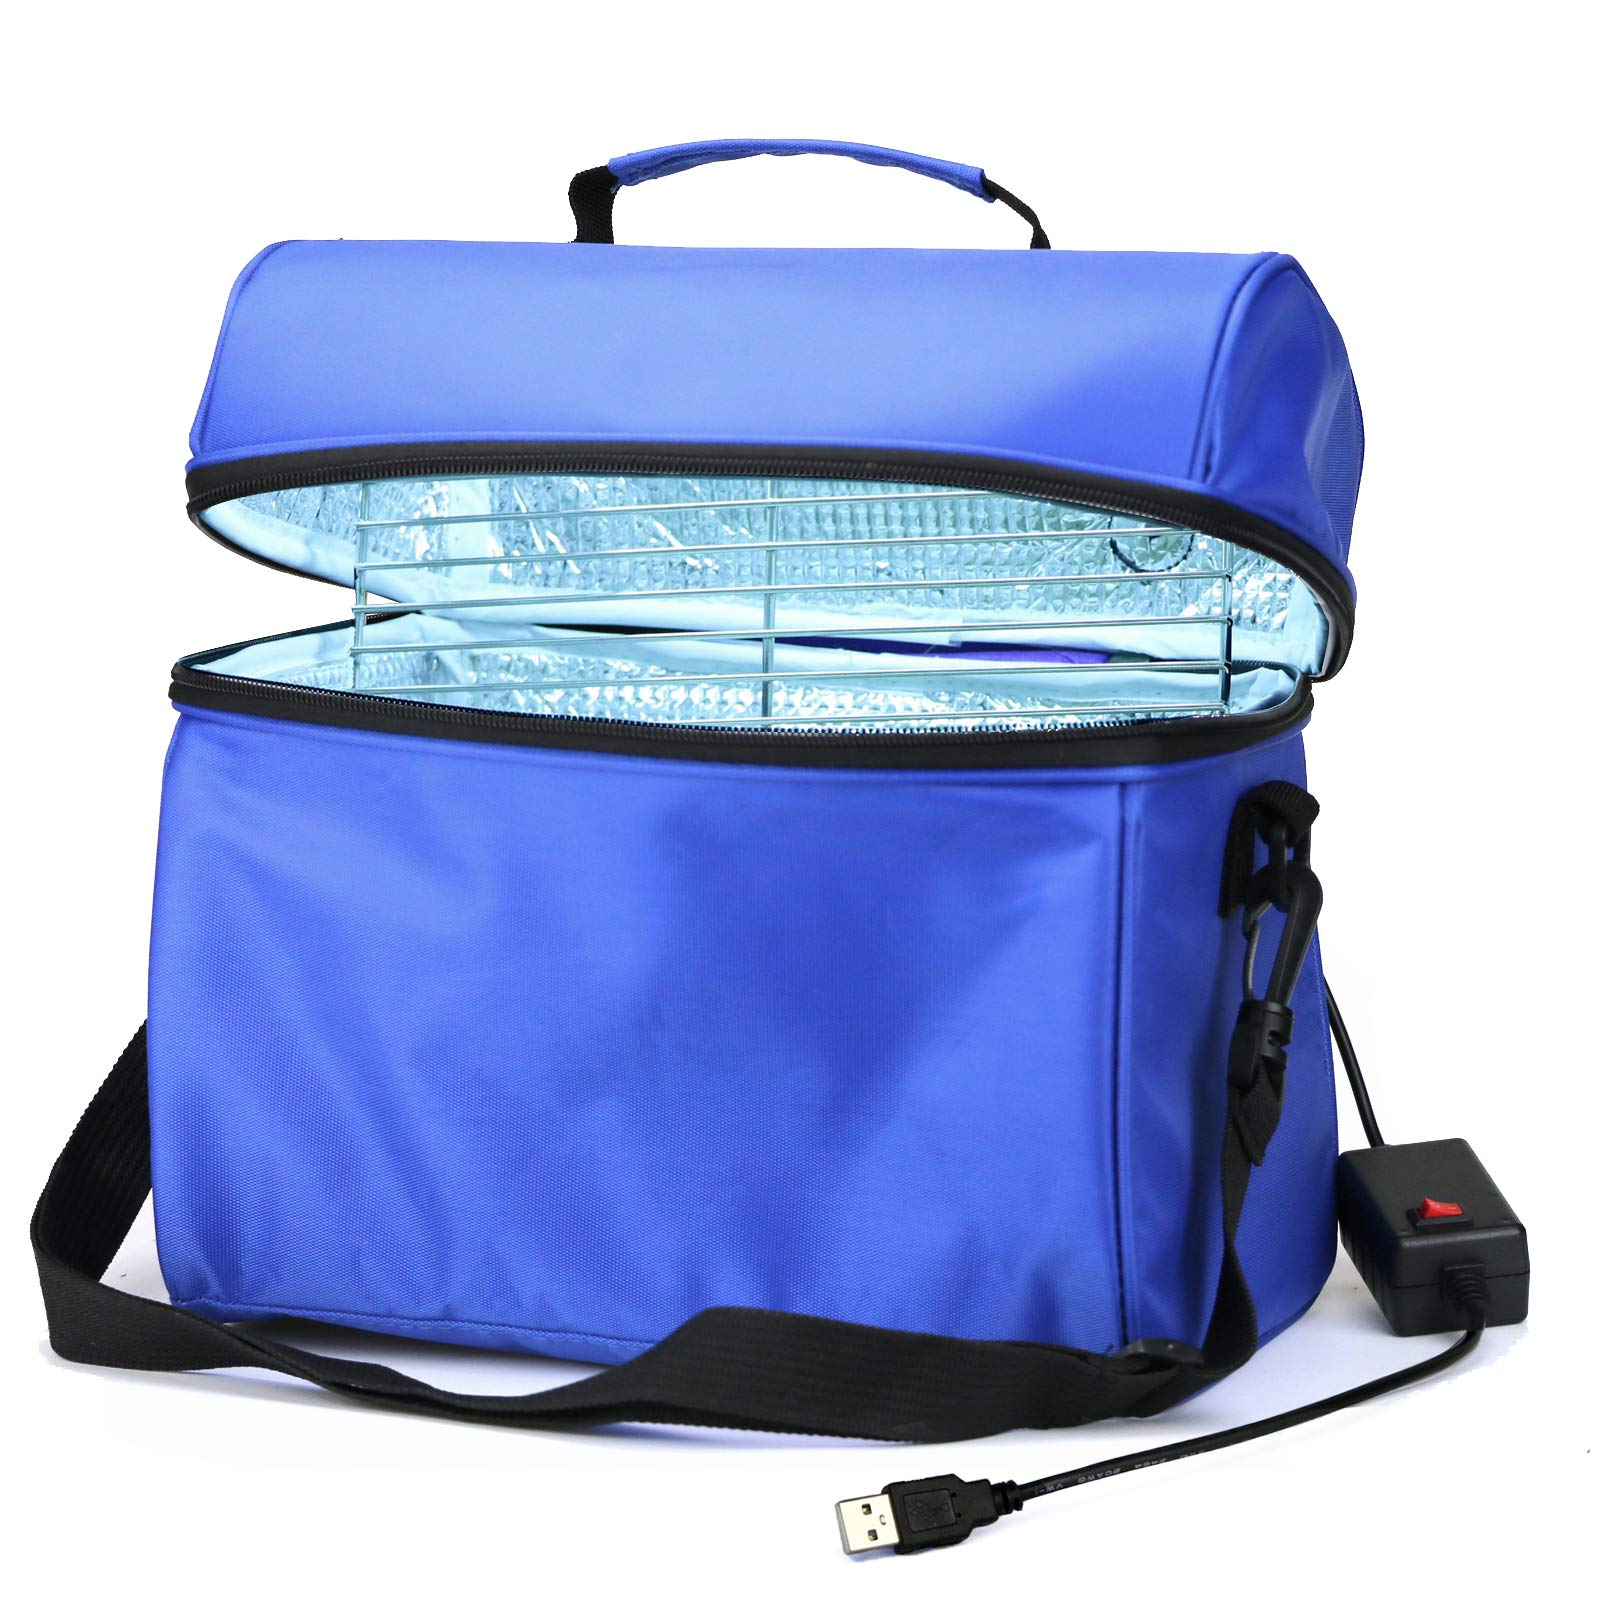 UV-C Light Clean Bag for Indoor & Outdoor Picnic Portable/USB Input/Big Capacity/Timer 5 Minutes/UVC Ozone Free